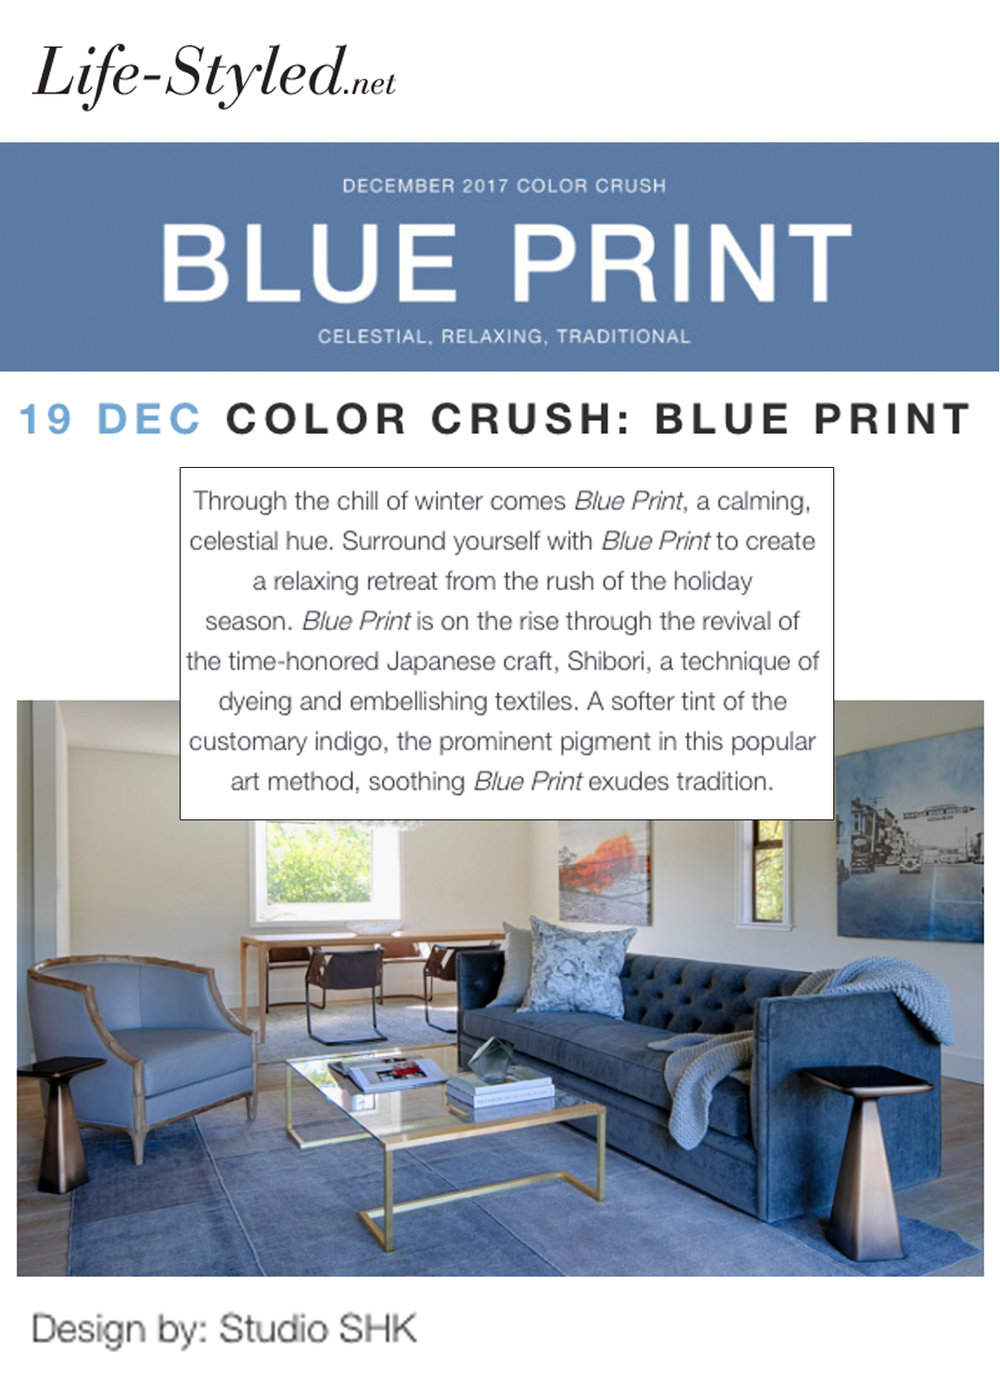 Life-Styled - In their December Color Crush: Blue Print, Life-Styled.net illustrates this calming, celestial hue with our serene Living Room.LINK: http://bit.ly/2DjaQd8